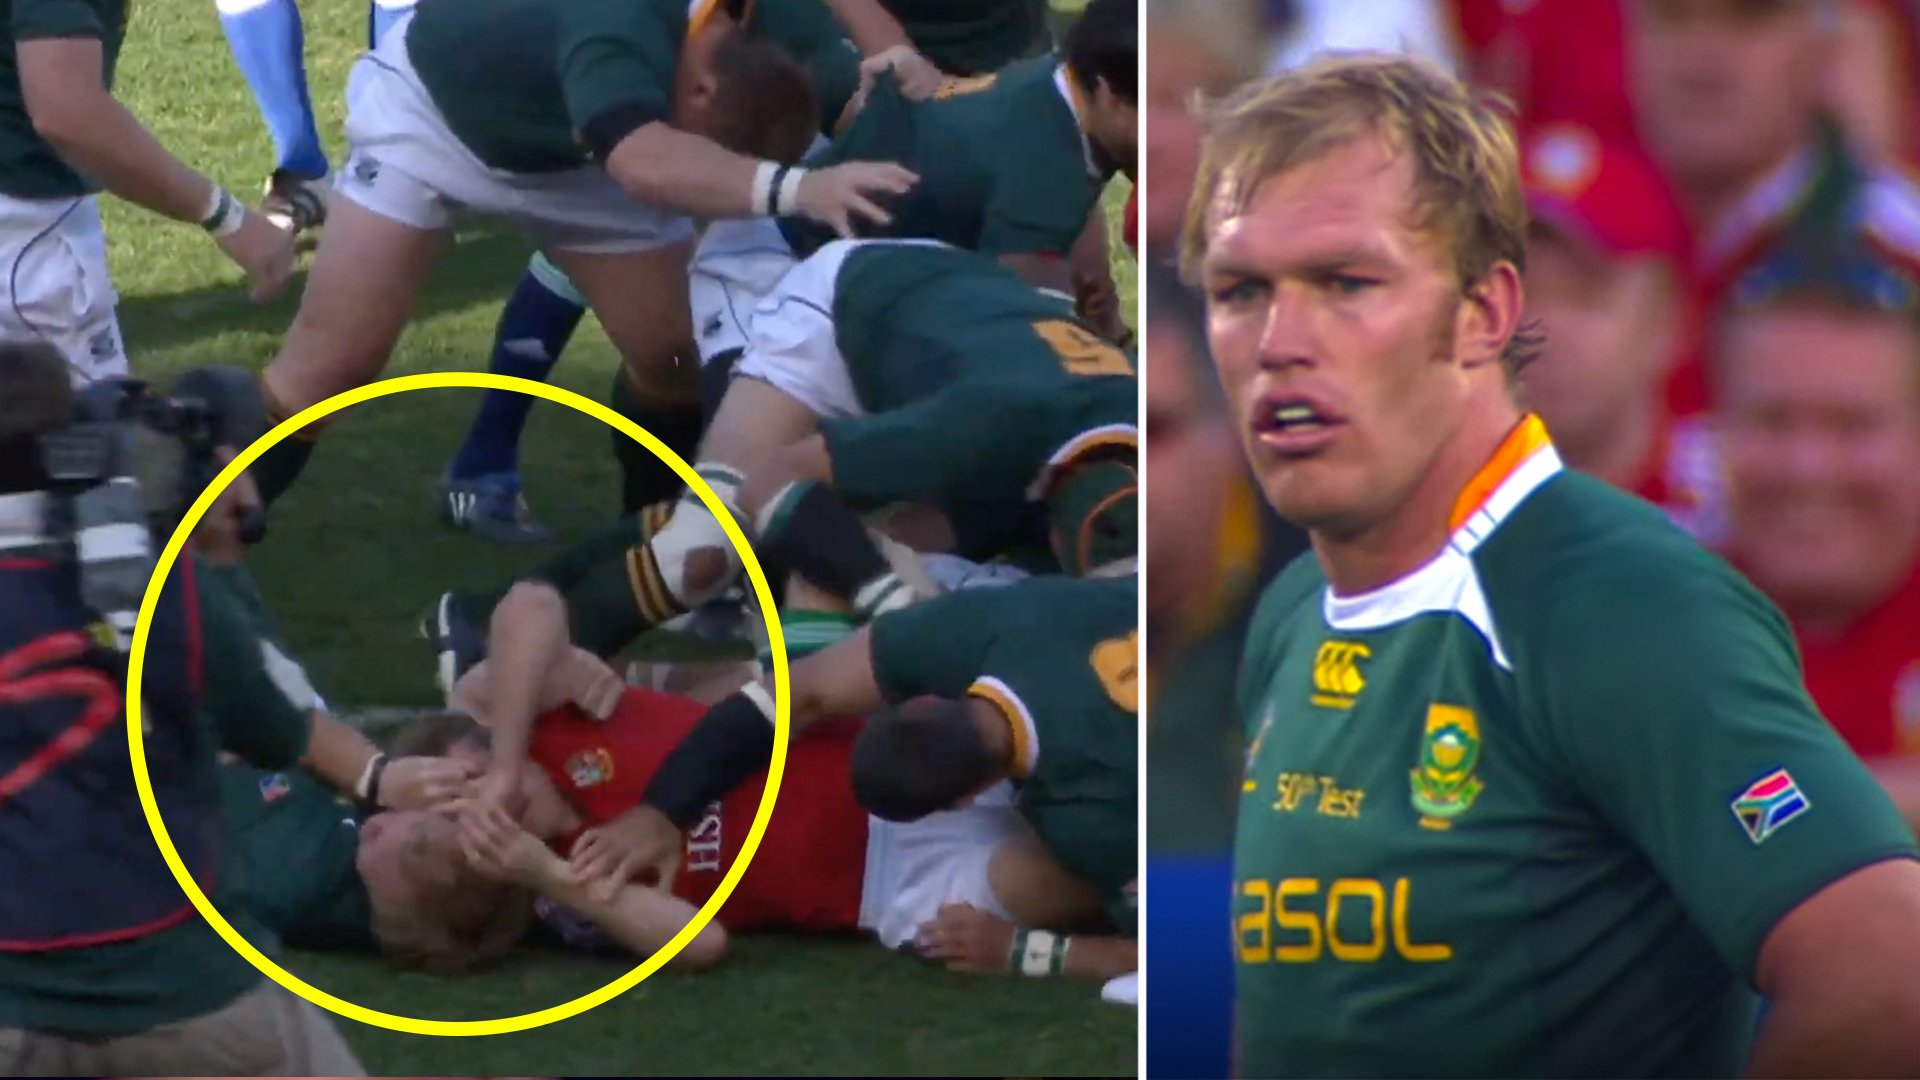 Full footage has been released of the Schalk Burger thuggery which ruined his reputation